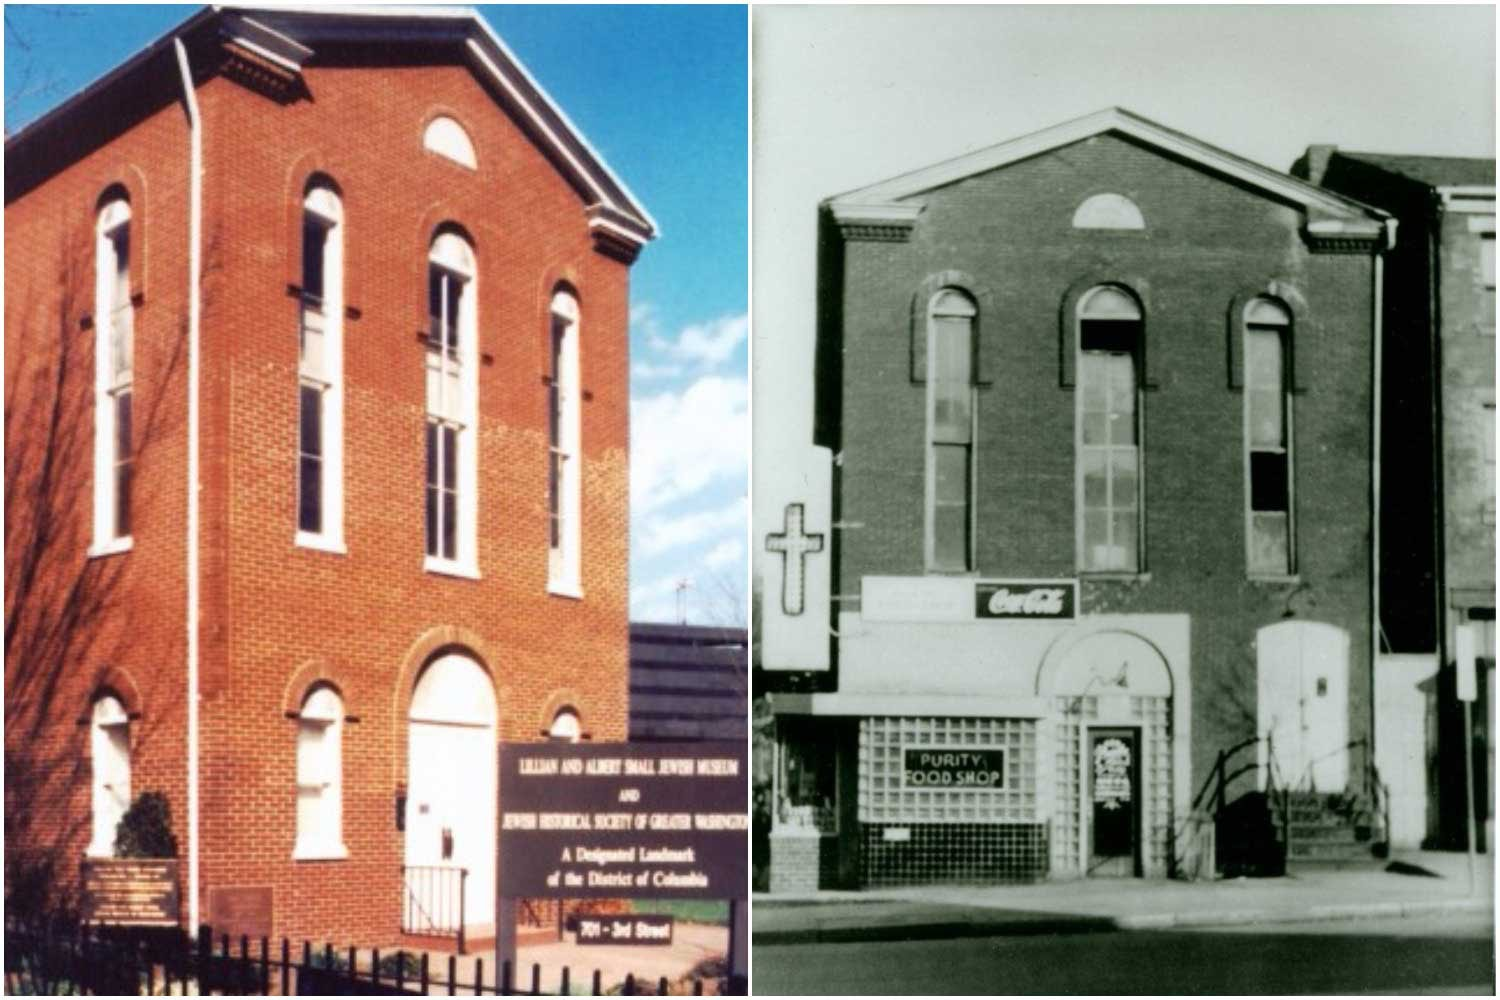 This red brick building began life in 1876 as a synagogue, and would later become three different churches. On the left is a color image of the synagogue, on the right is a black and white image of the same building with a neon cross on the side.